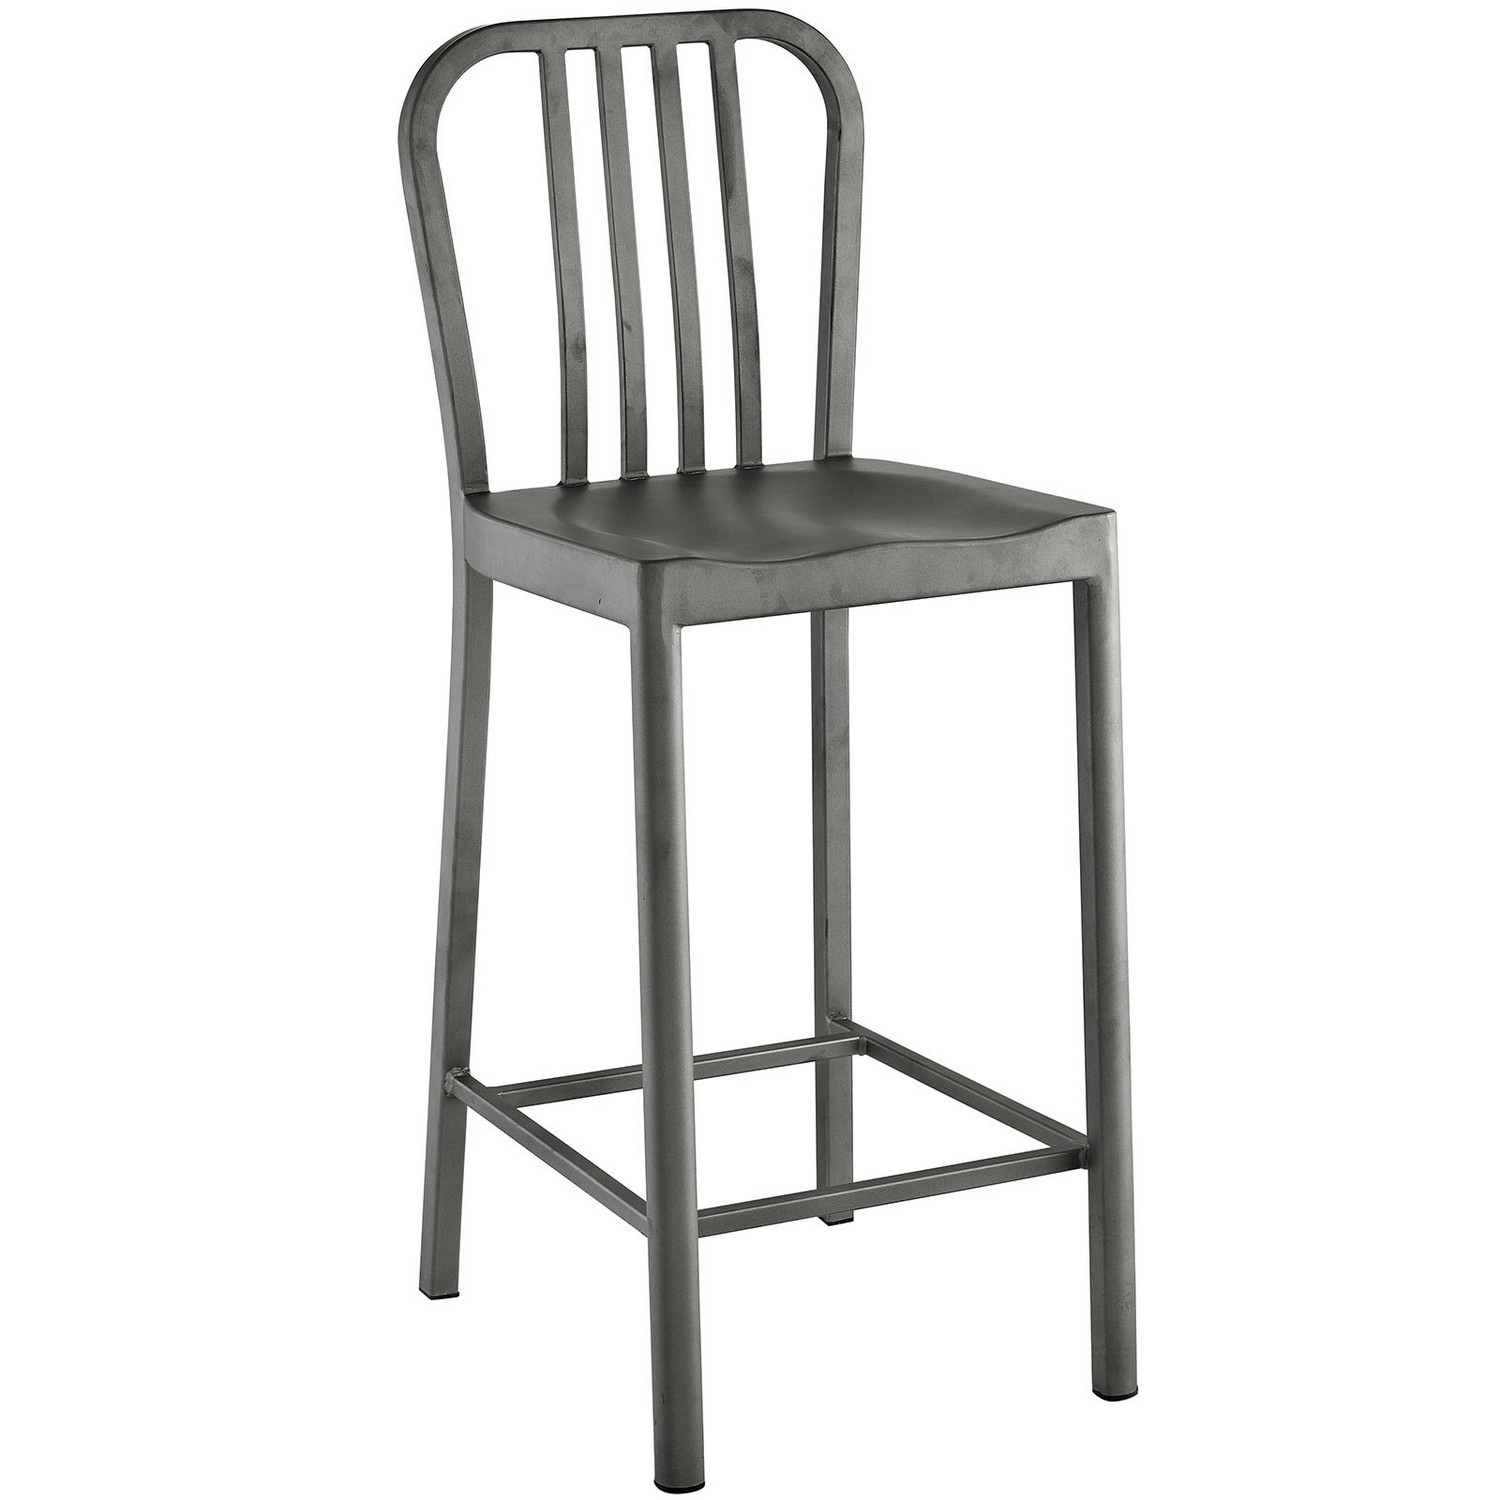 Modway Clink Counter Stool - Silver